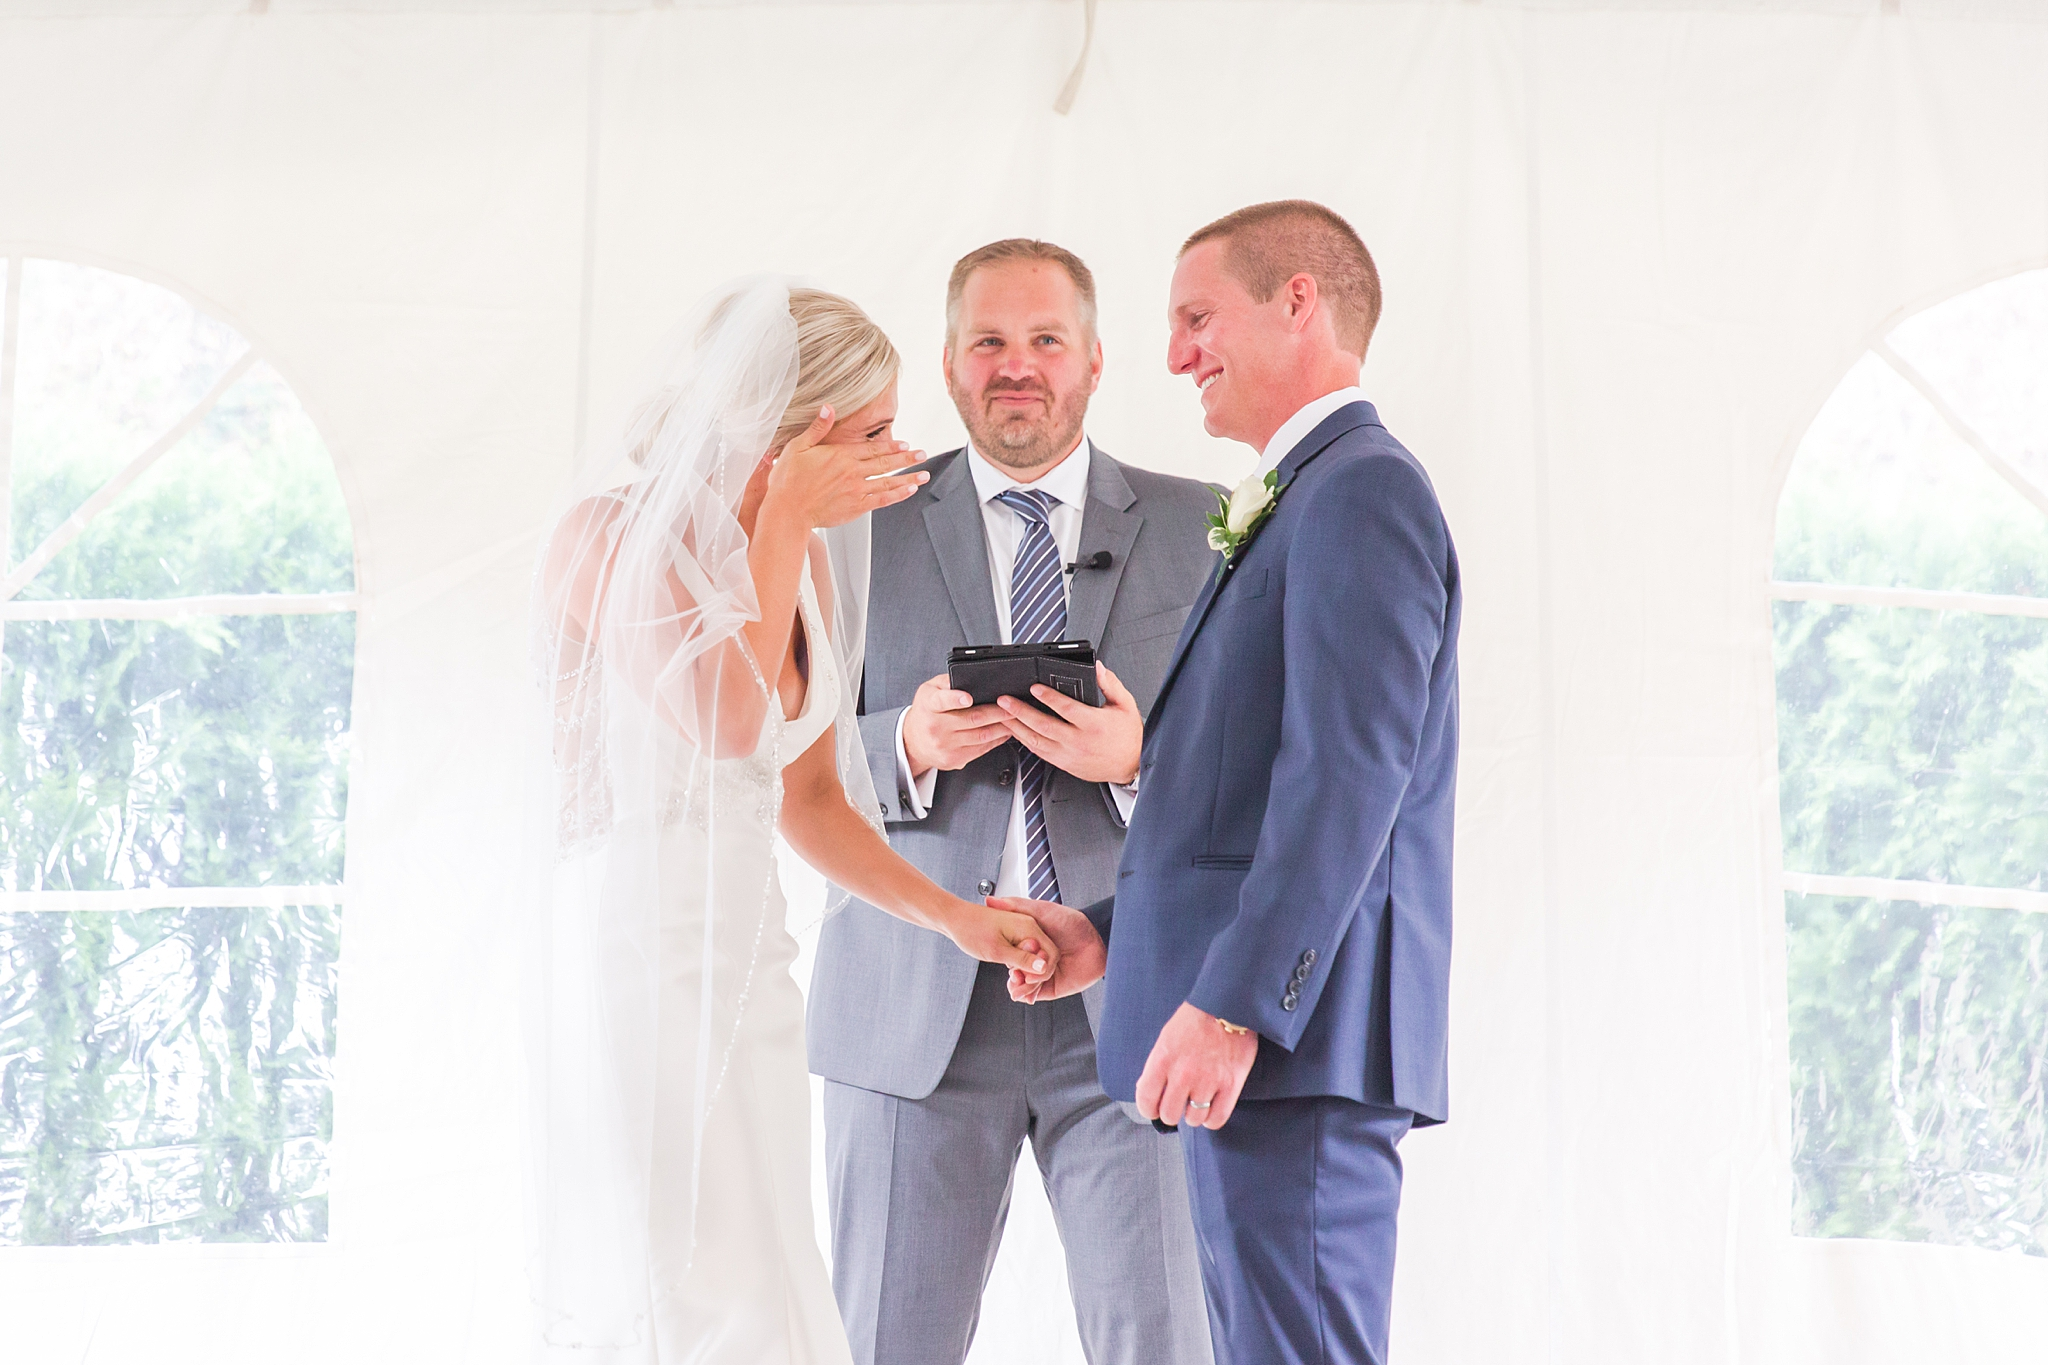 chapman-house-casually-chic-wedding-photography-in-rochester-michigan-by-courtney-carolyn-photography_0041.jpg